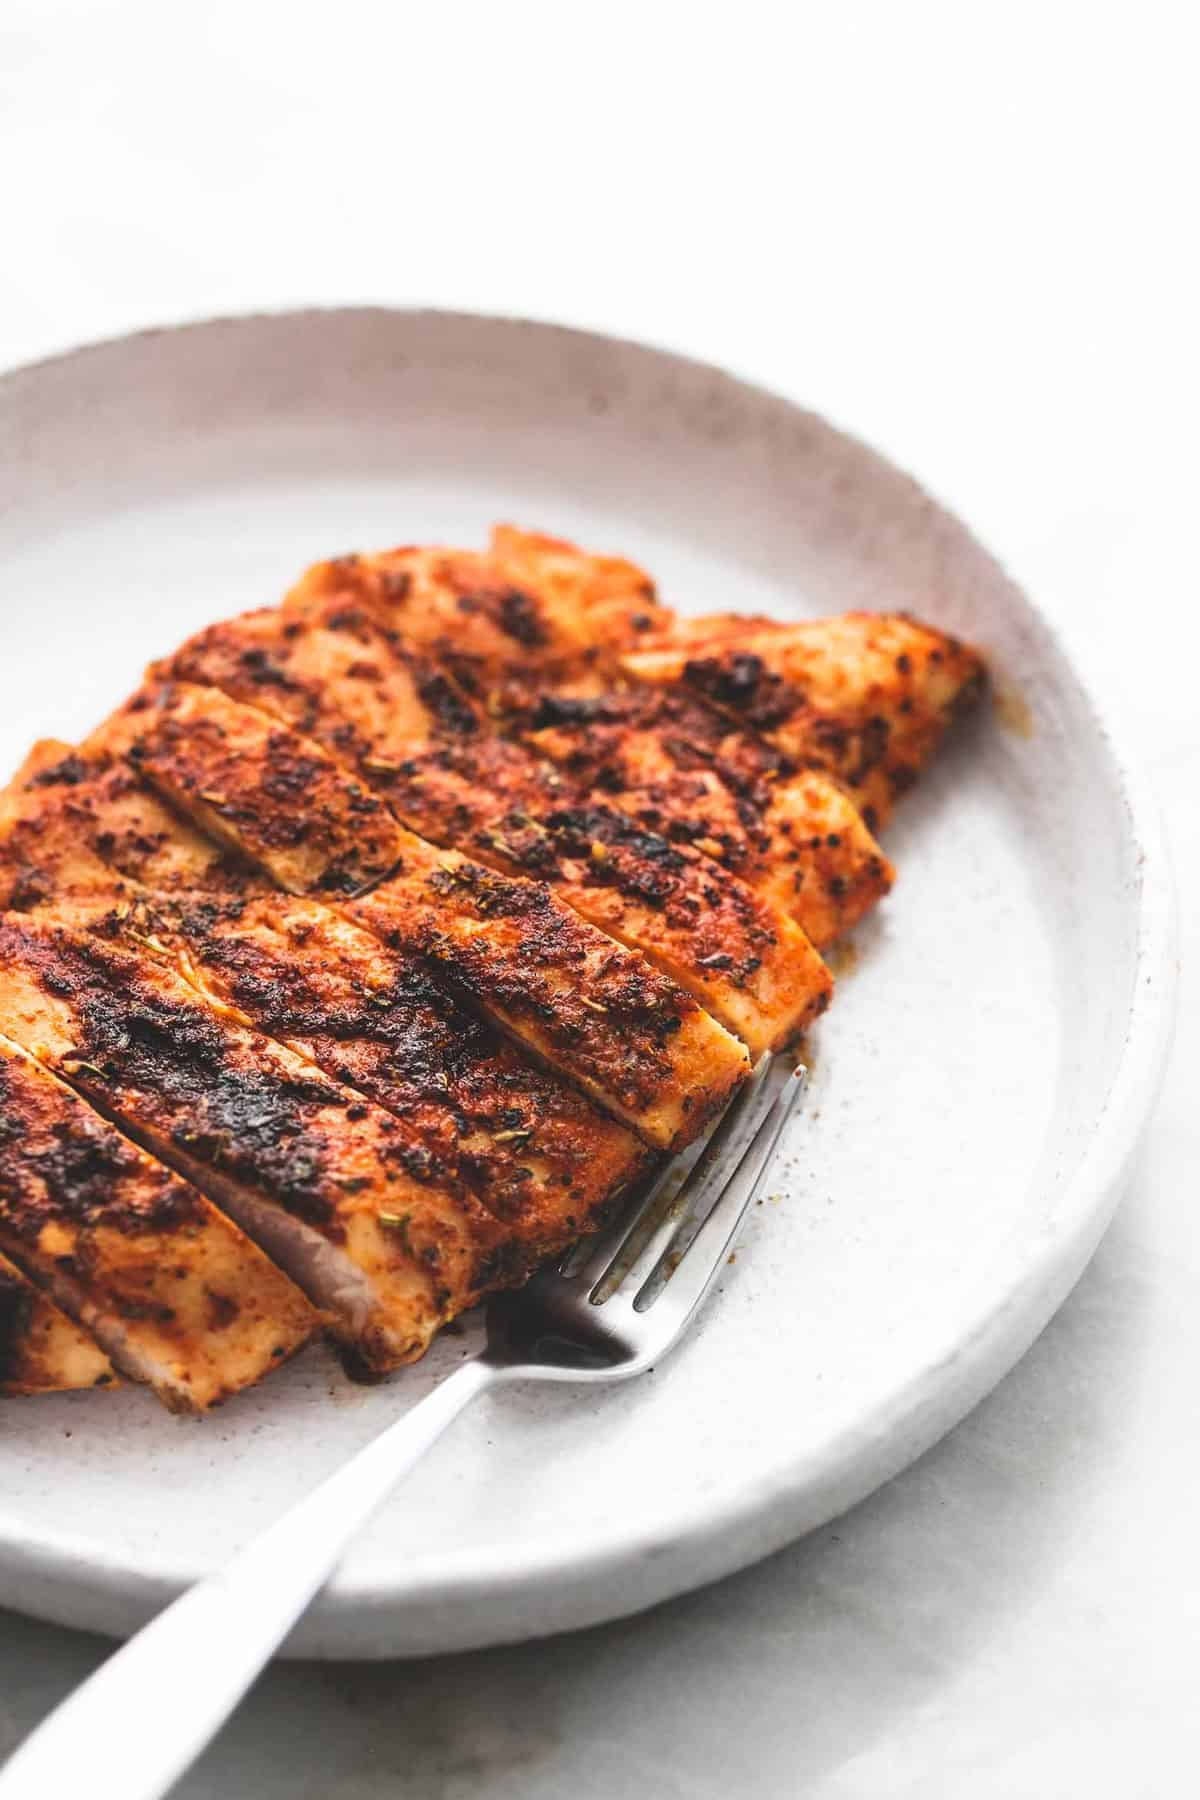 Simple Grilled Chicken Dry Rub easy tasty recipe | lecremedelacrumb.com